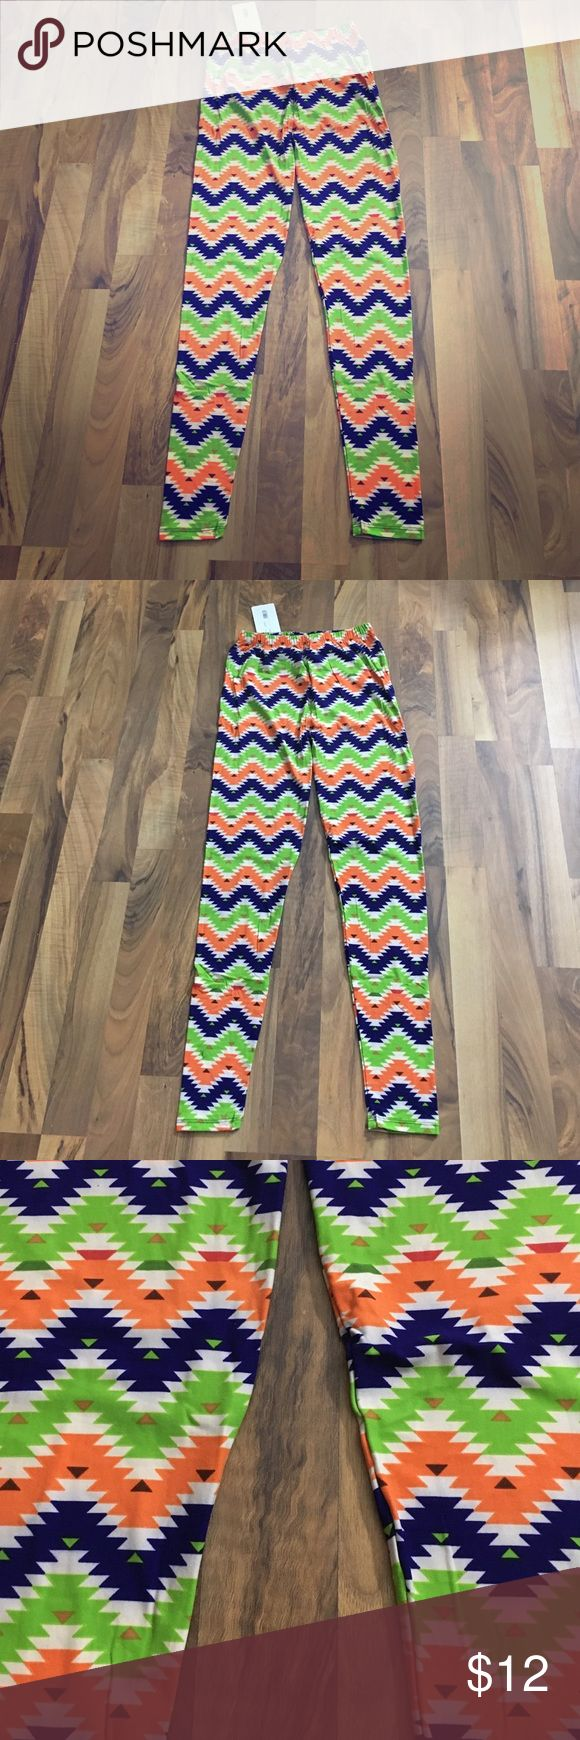 OS Lime Green Chevron Geo Printed Stretch Leggings These leggings feature contrasting colors in an overall bright pattern. These are soft polyester/spandex blended material. Tag reads one size (and they are super stretchy) - I would comfortably say they fit size small thru large. Shes Pants Leggings